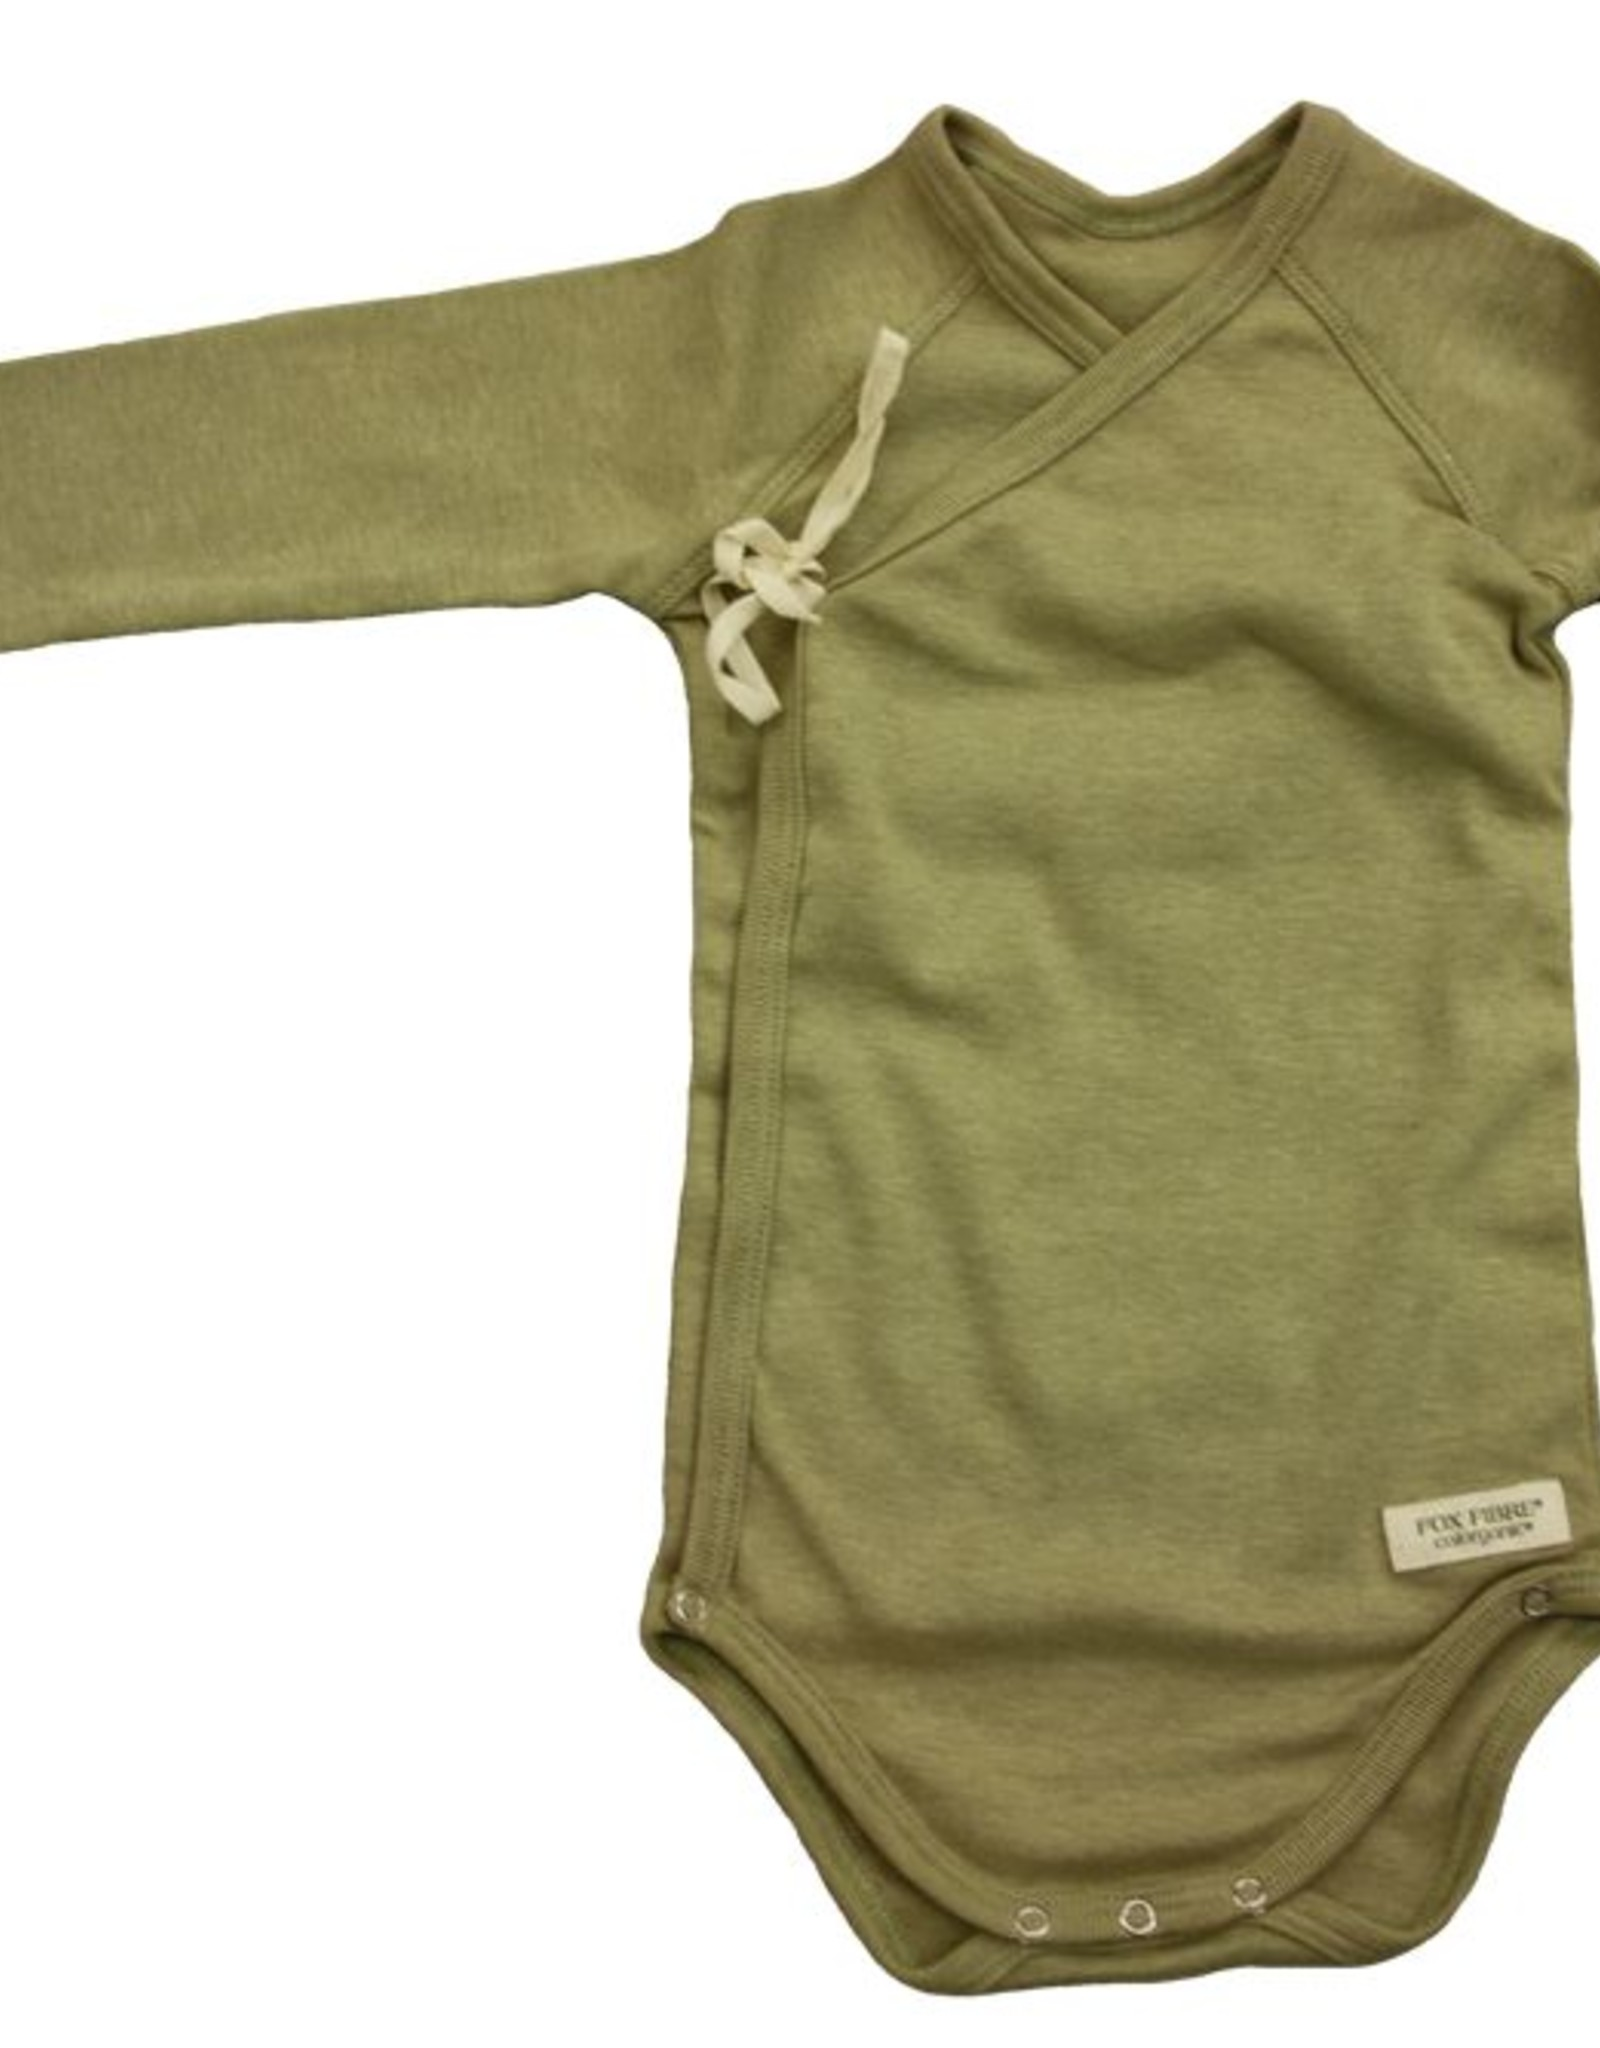 Cross baby body with long sleeve. sizes 1, 3, 6 months.